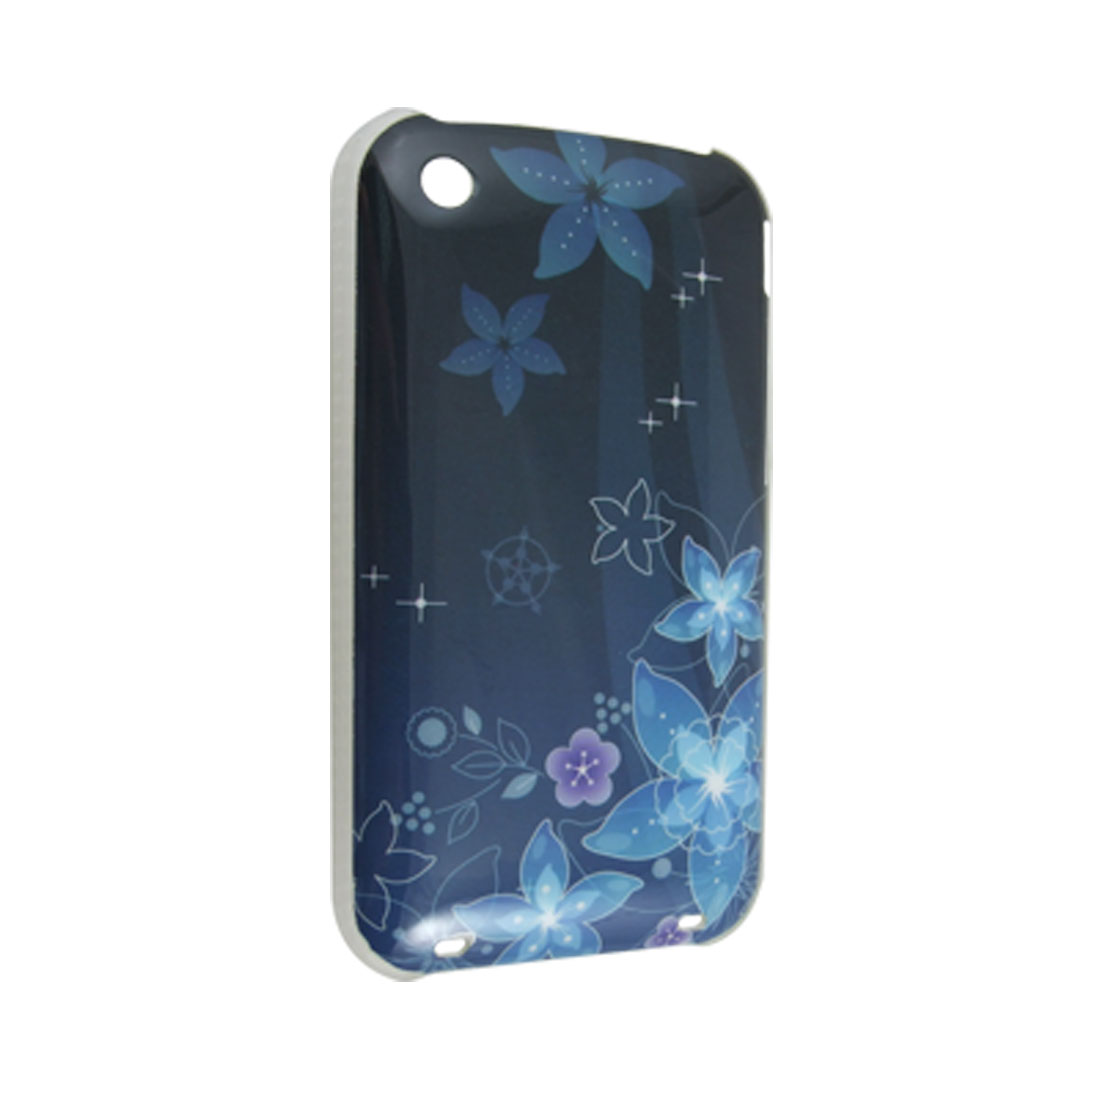 Floral Hard Plastic IMD Back Cover Guard for iPhone 3G